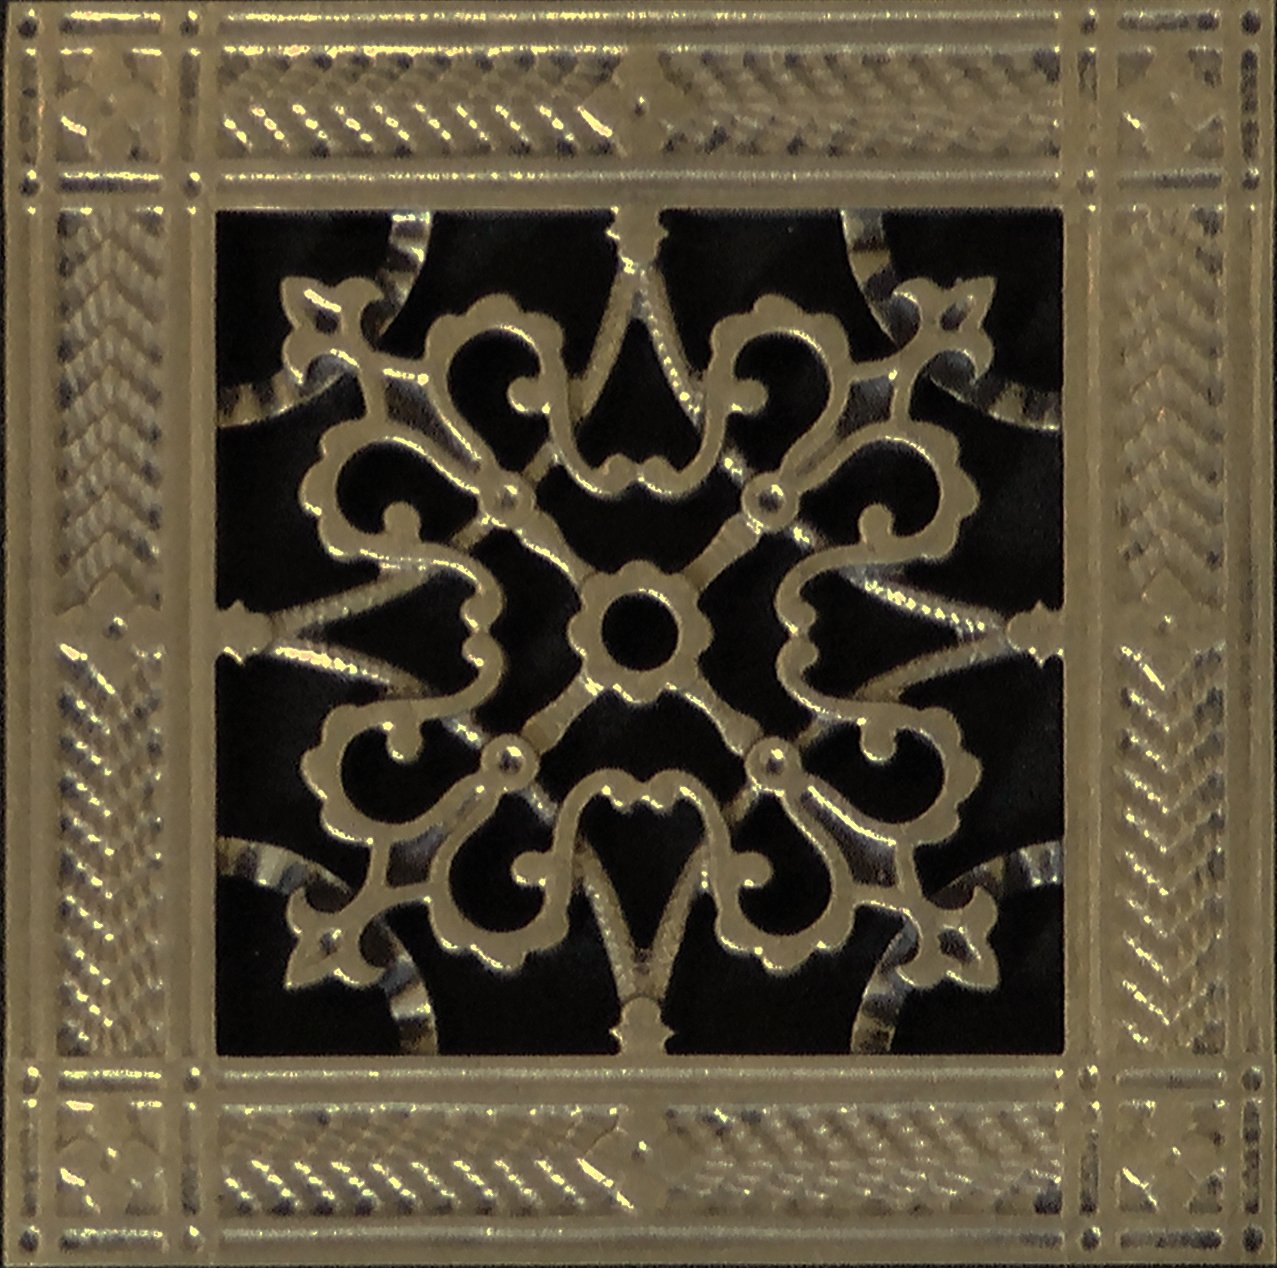 Decorative Grille, Vent Cover, or Return Register. Made of Urethane Resin to fit over a 6''x6'' duct or opening. Total size of vent is 8''x8''x3/8'', for wall and ceiling grilles (not for floor use).